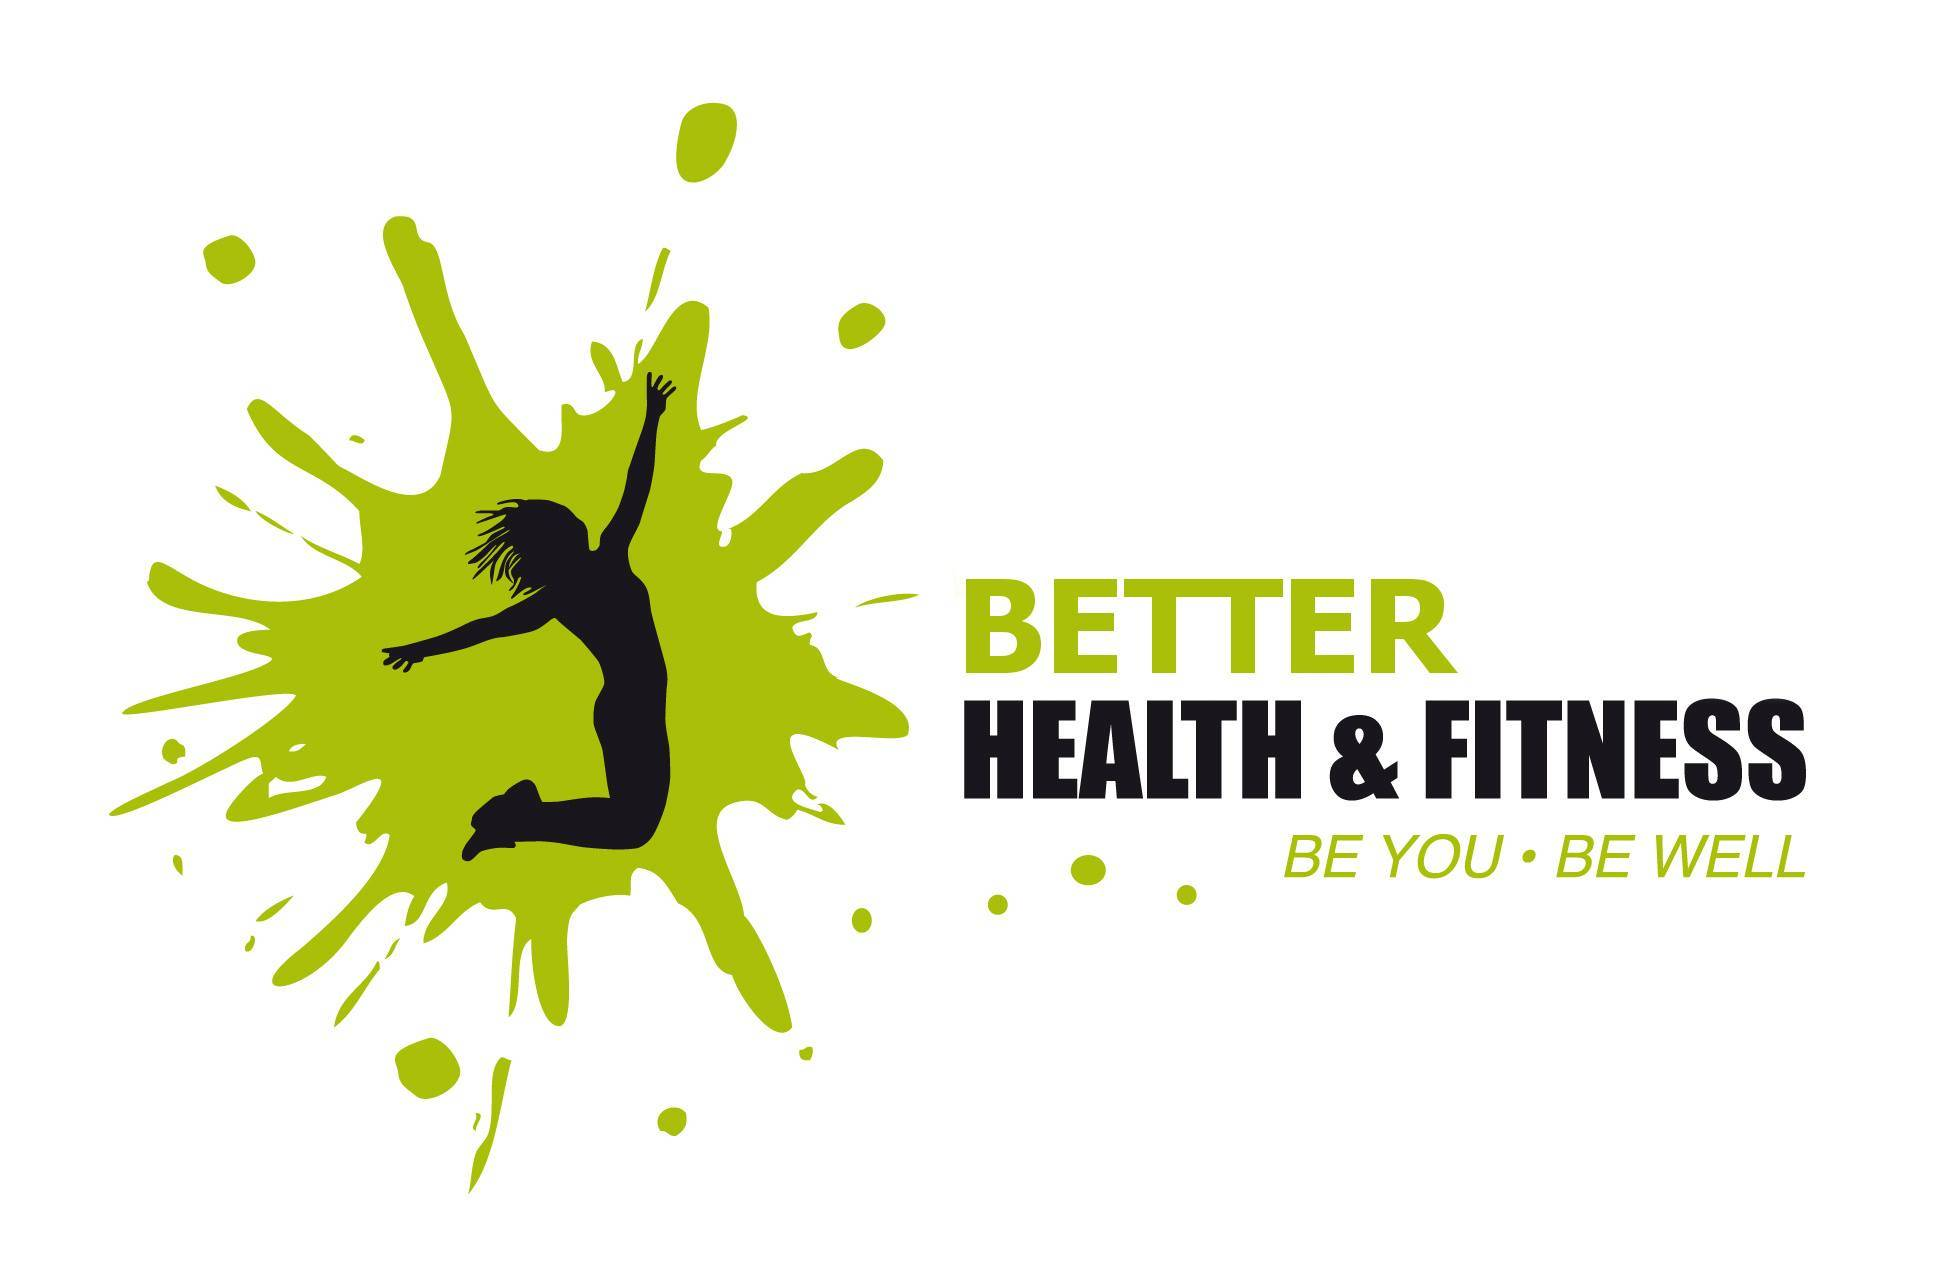 Better health & fitness